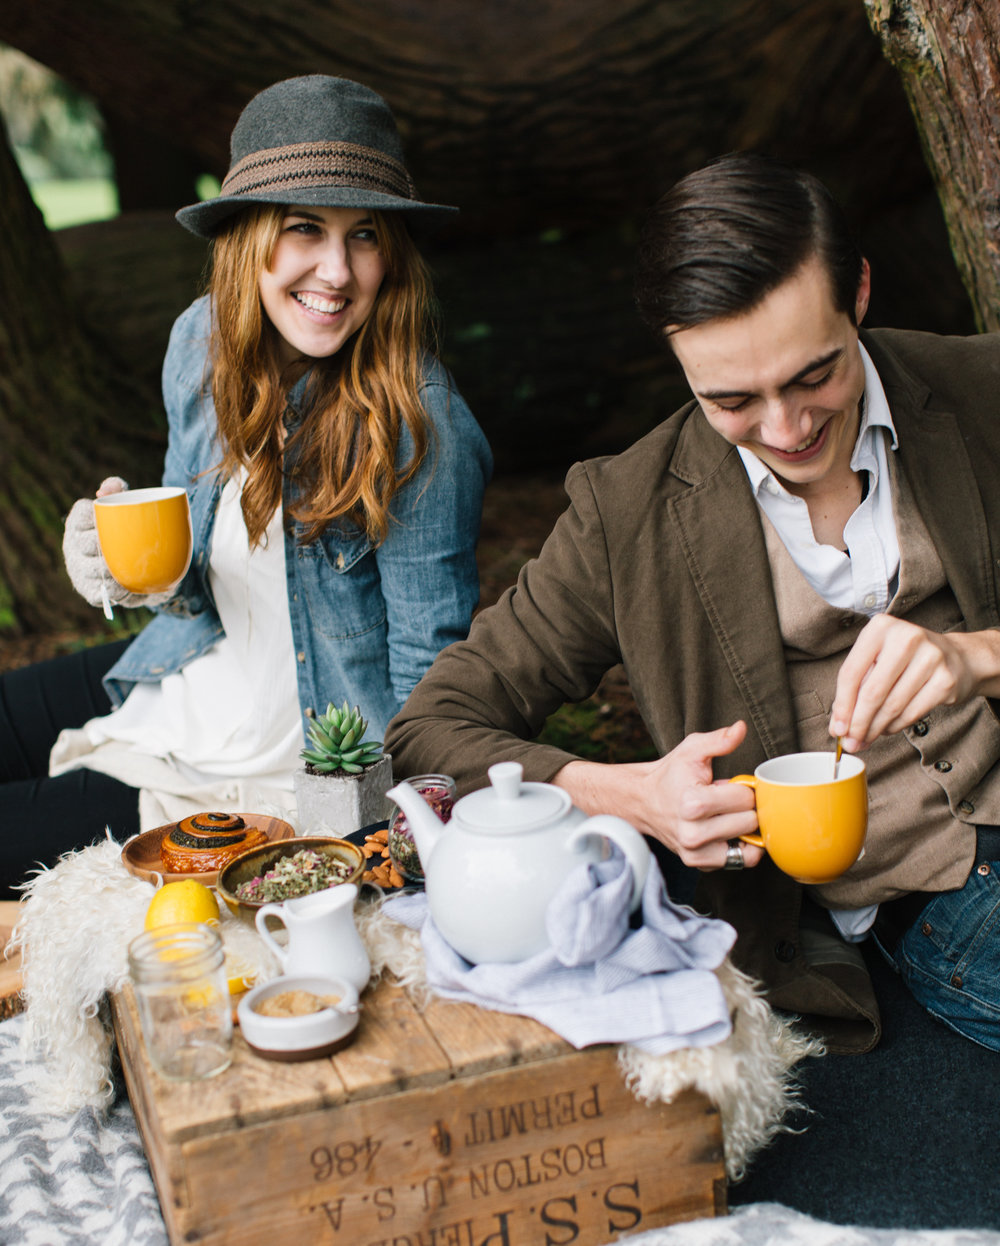 Nelle_Clark_Photography_Winter_Tea_Picnic-2.jpg